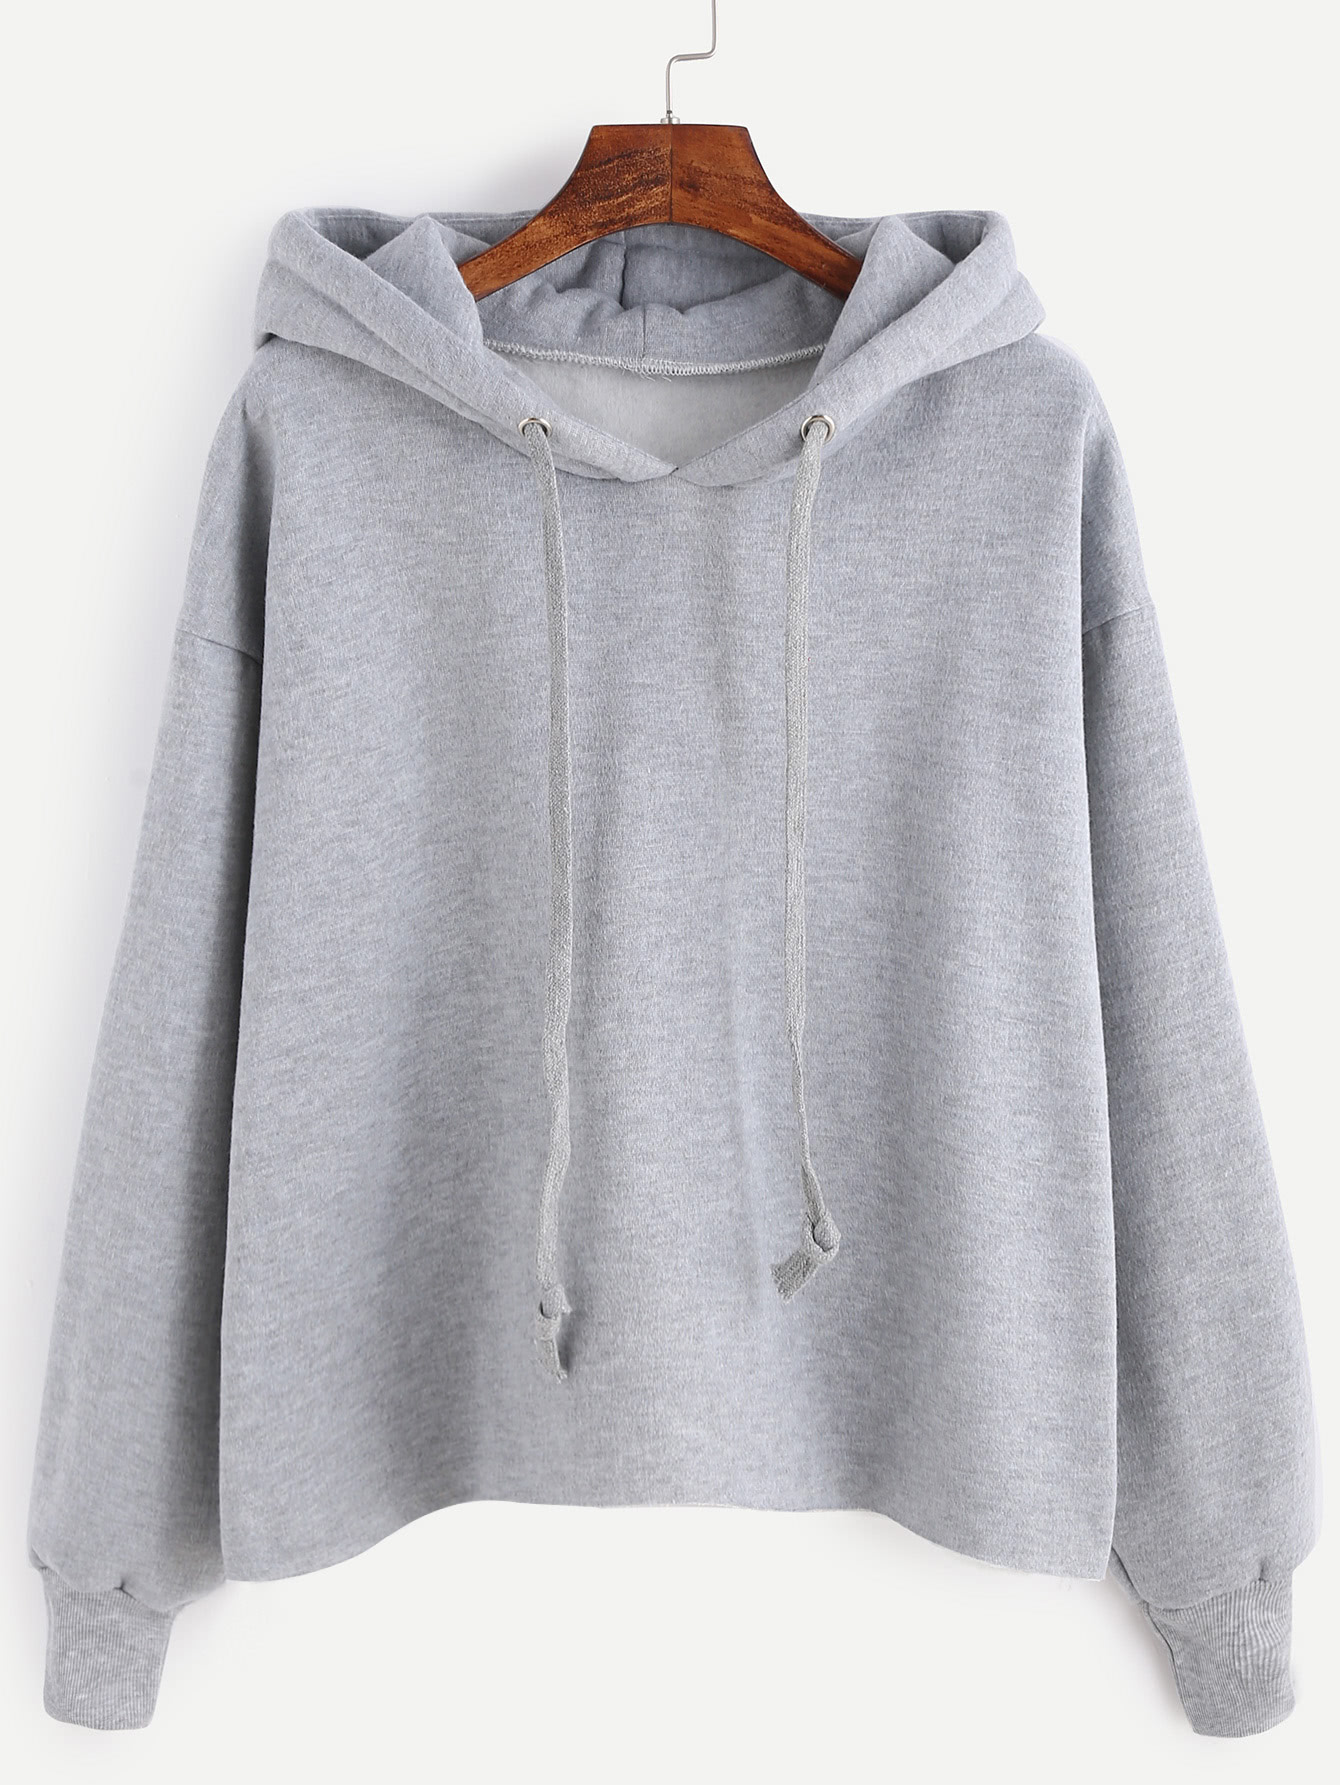 Shop adidas Hoodies Sweatshirts on palmmetrf1.ga Browse all products, from shoes to clothing and accessories in this collection. Find all available syles and colors of in the official adidas online store.